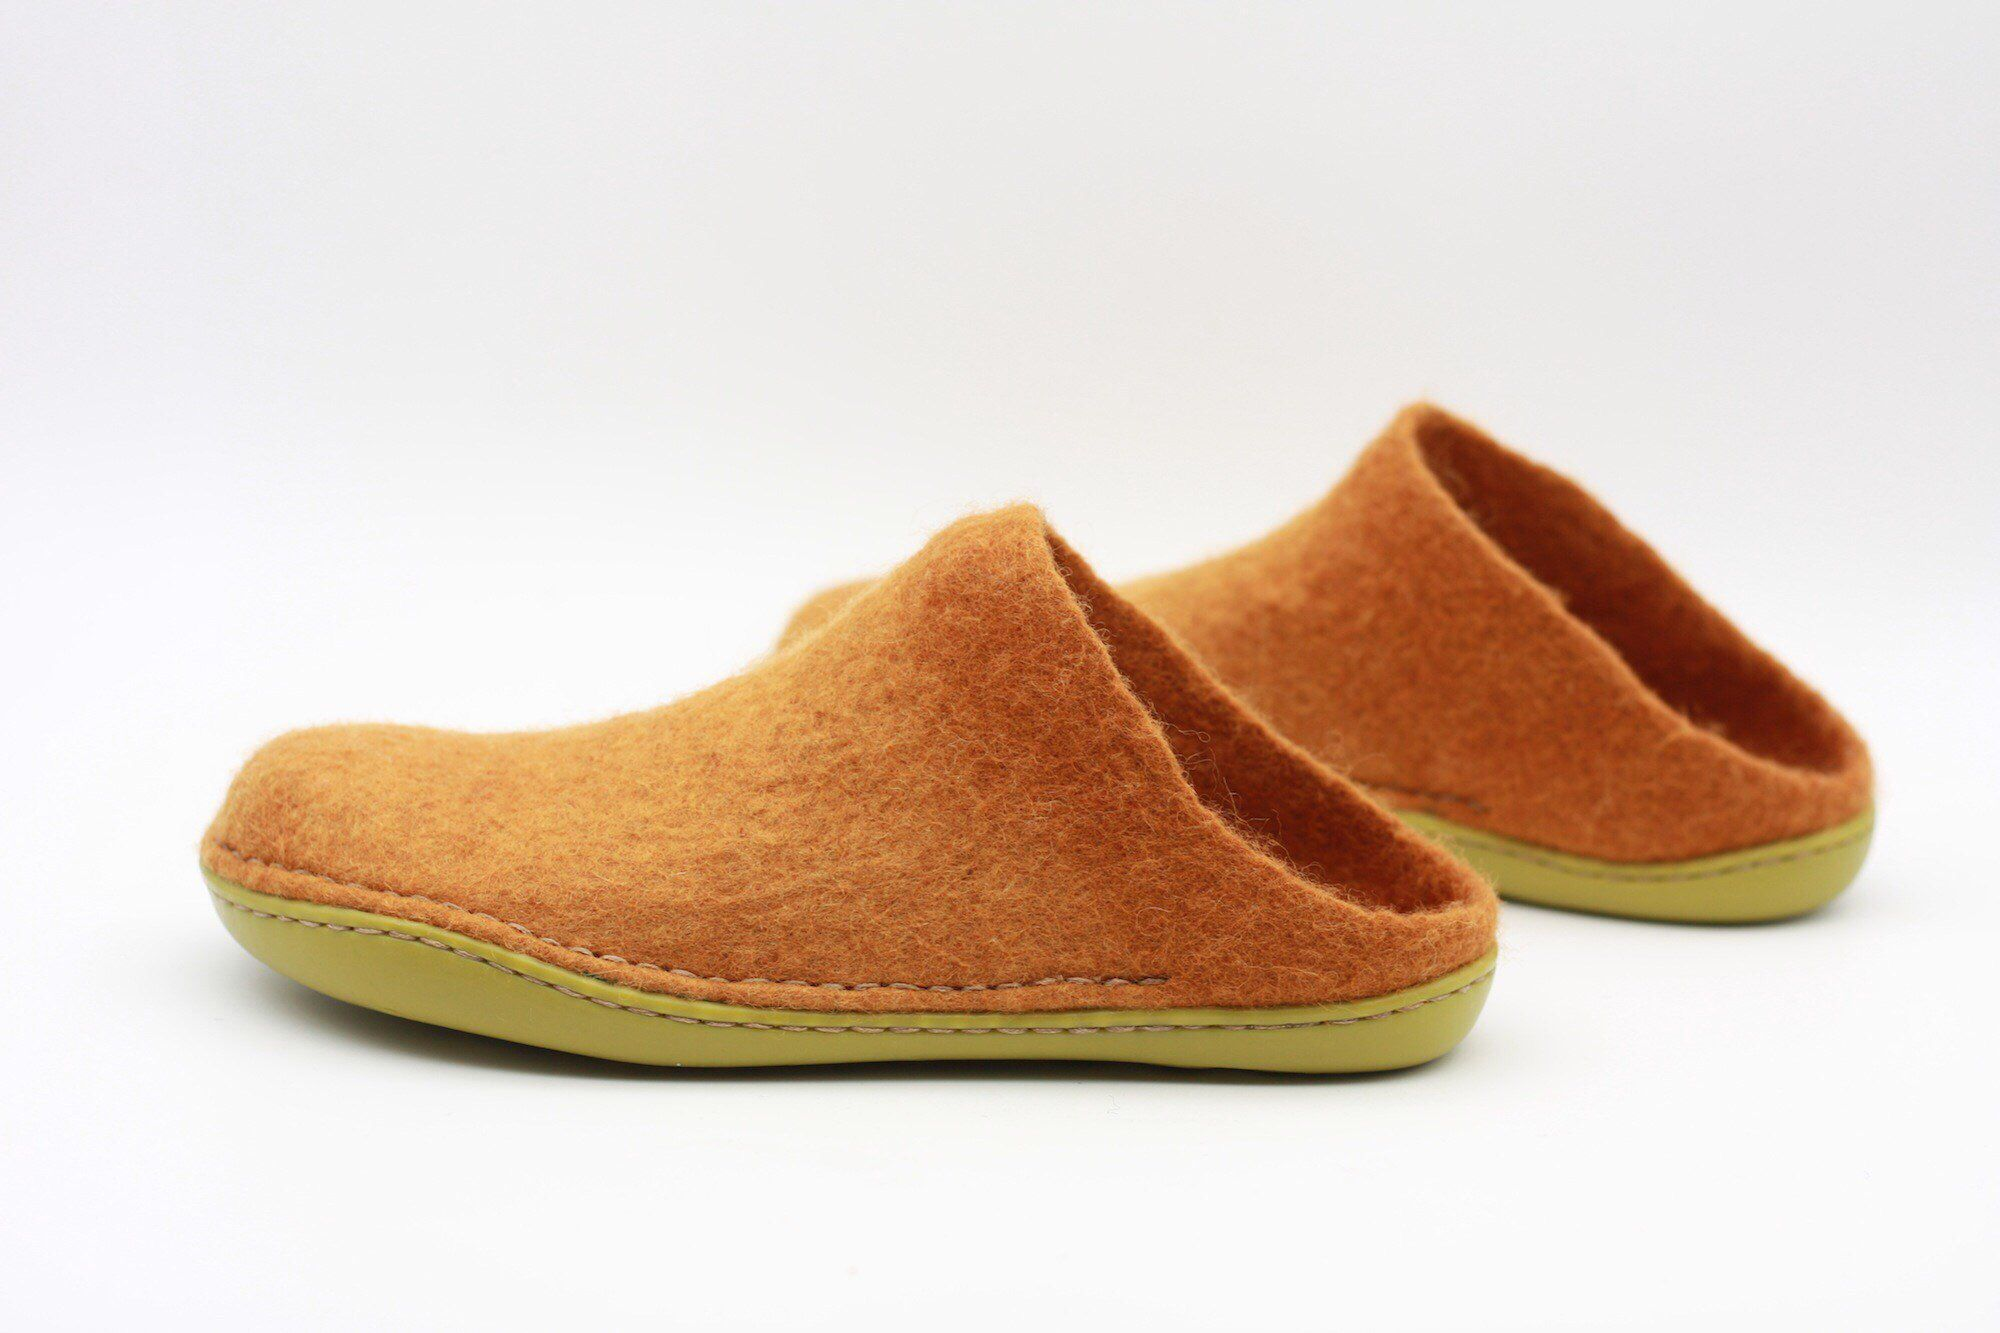 c204c511955bc LUCIELALUNE Spring women barefoot shoes handmade felted merino wool ...